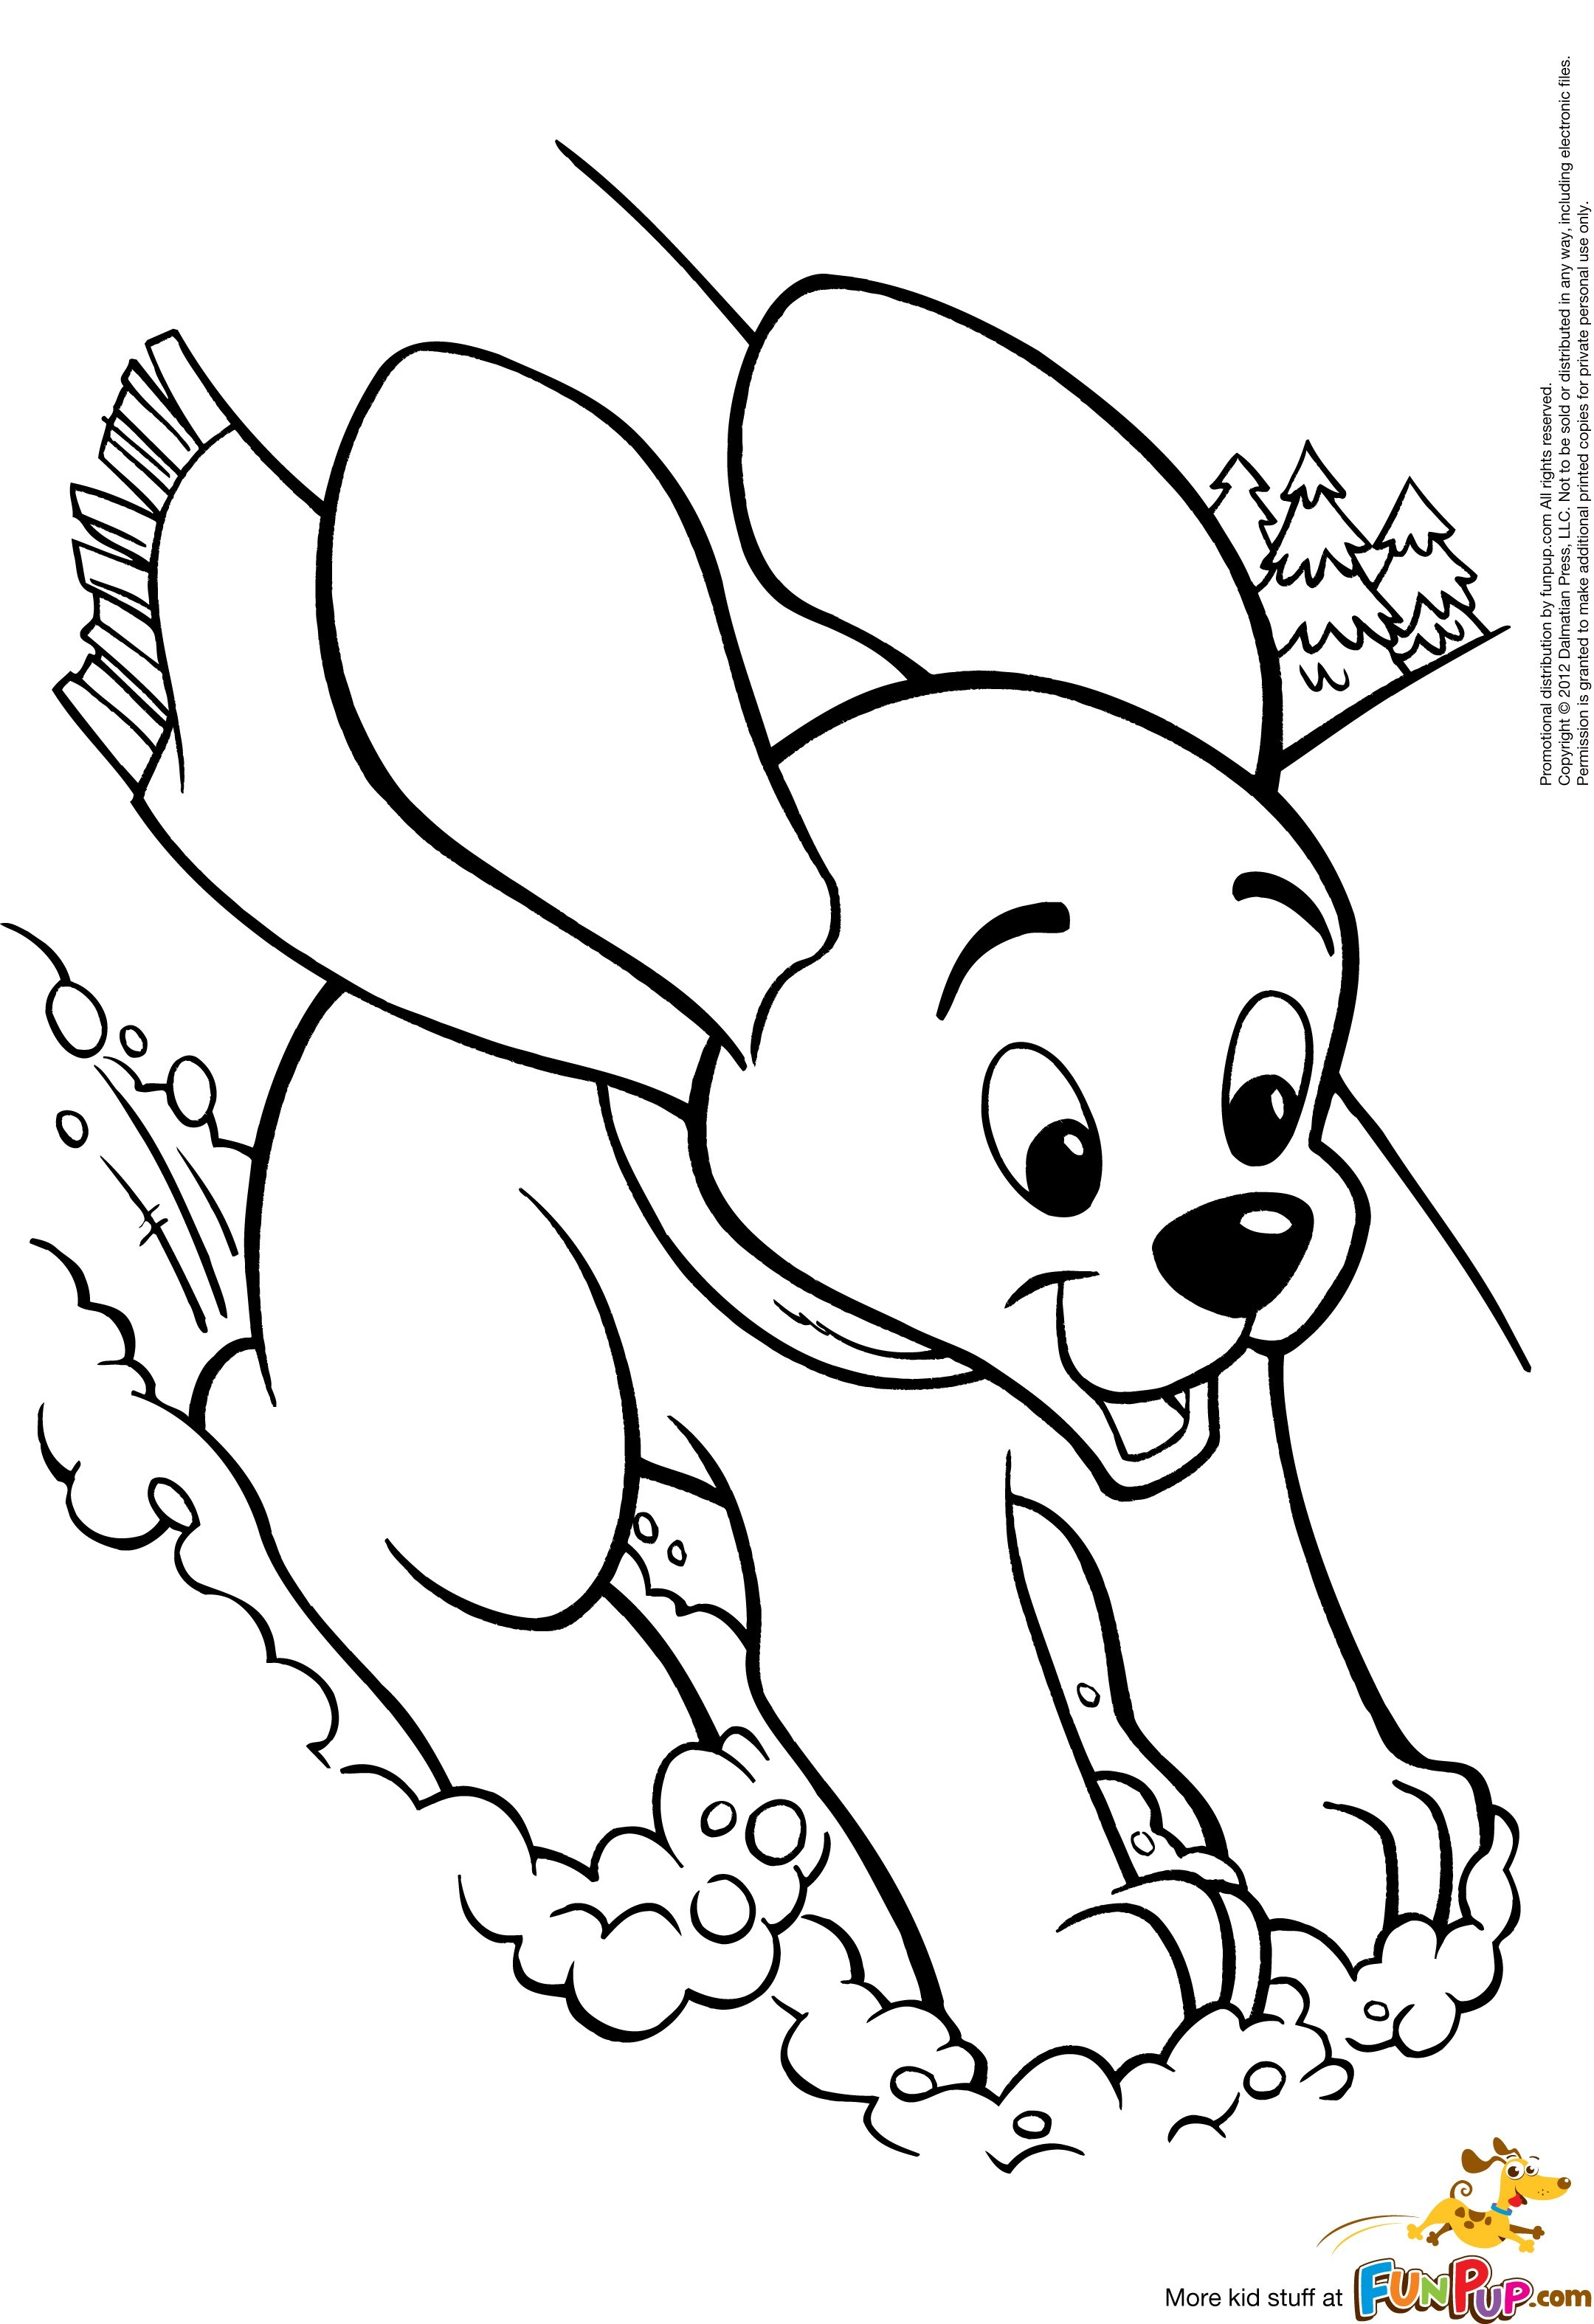 coloring pages to print dogs halloween dog coloring pages at getcoloringscom free pages to print dogs coloring